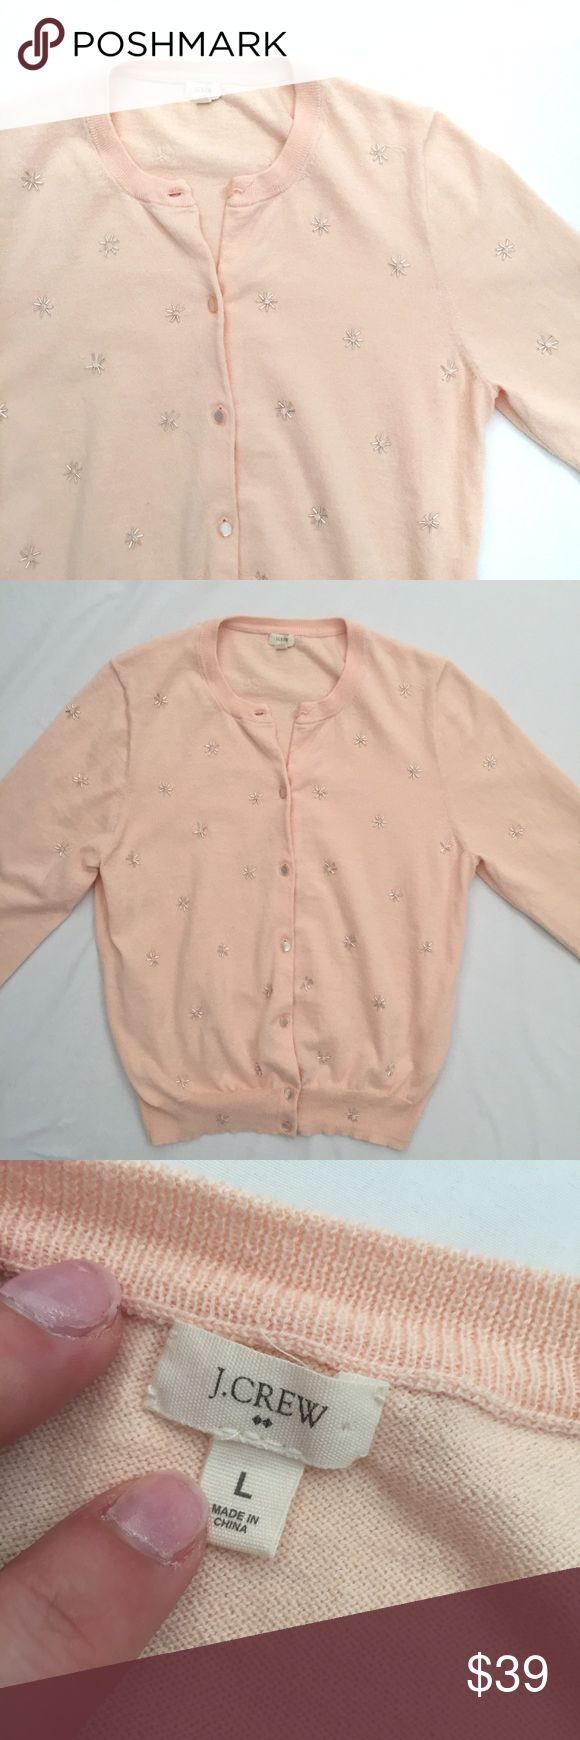 J. Crew blush cardigan with snowflake style beads ASAP J. Crew Factory Sweaters Cardigans